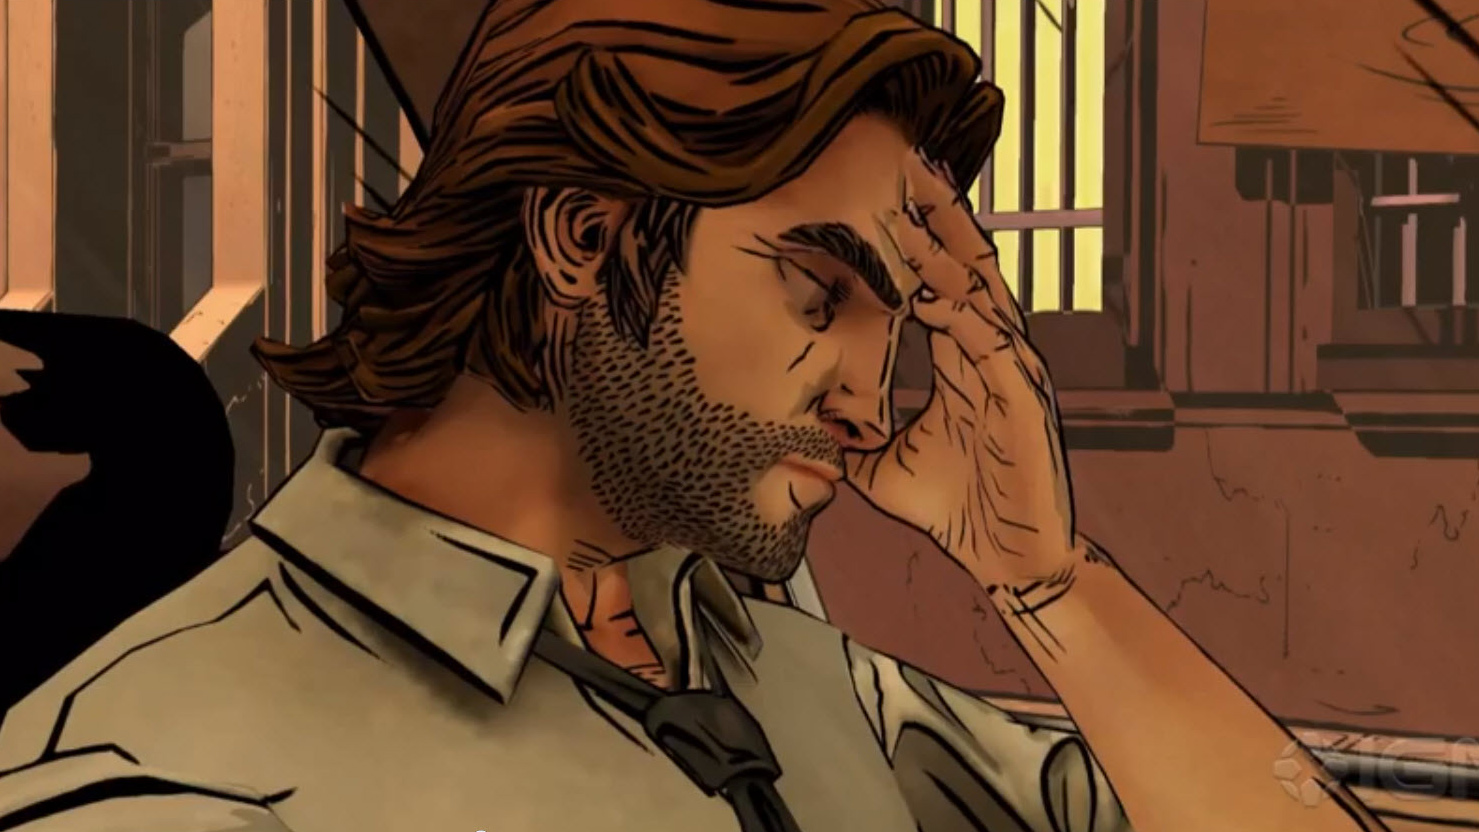 The Wolf Among Us Episode 2 trailer shows the dark side of Fabletown